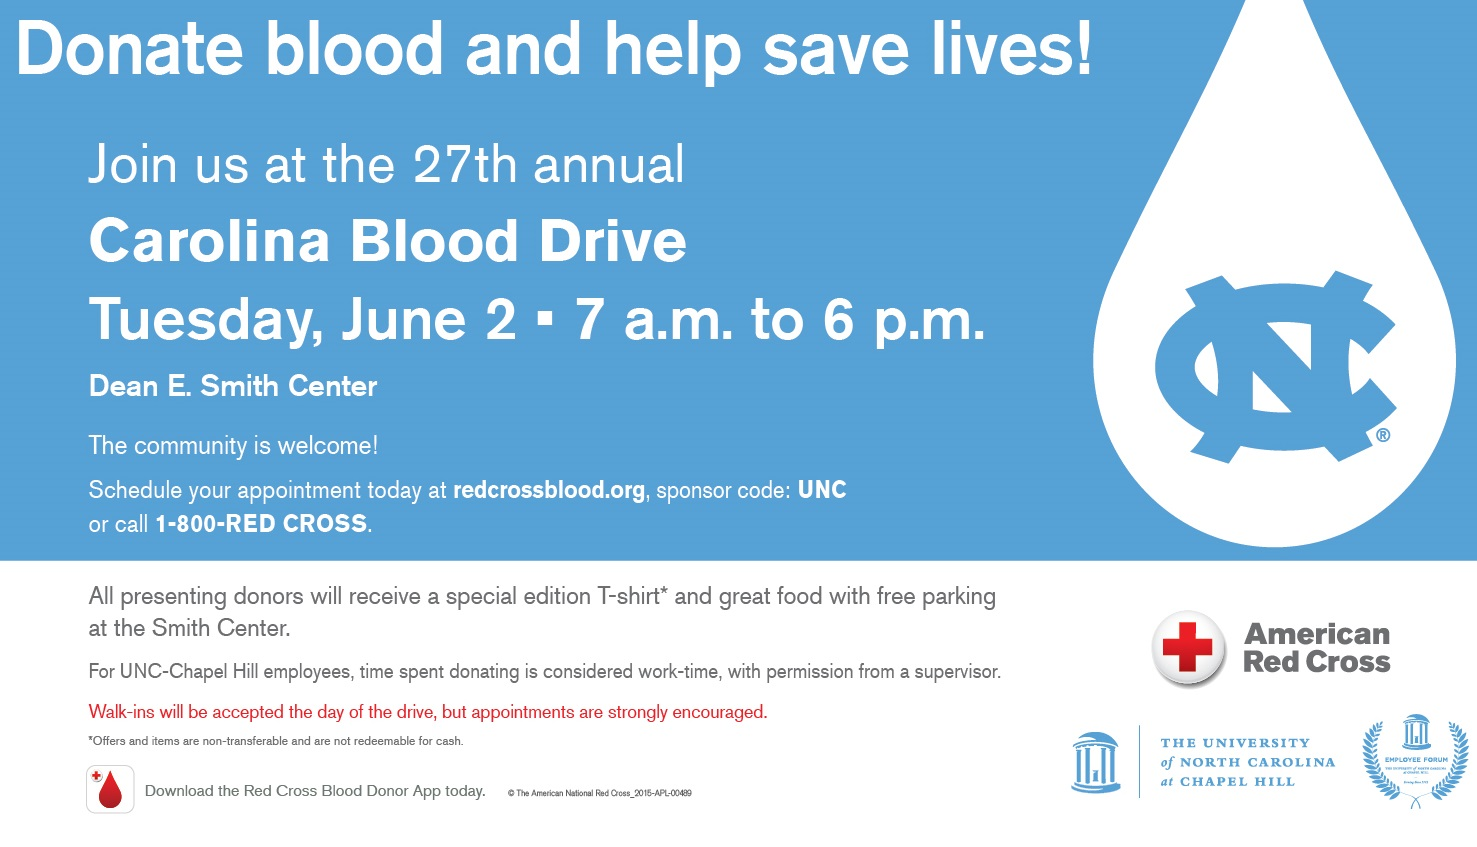 Sign up now for the 27th annual Carolina Blood Drive